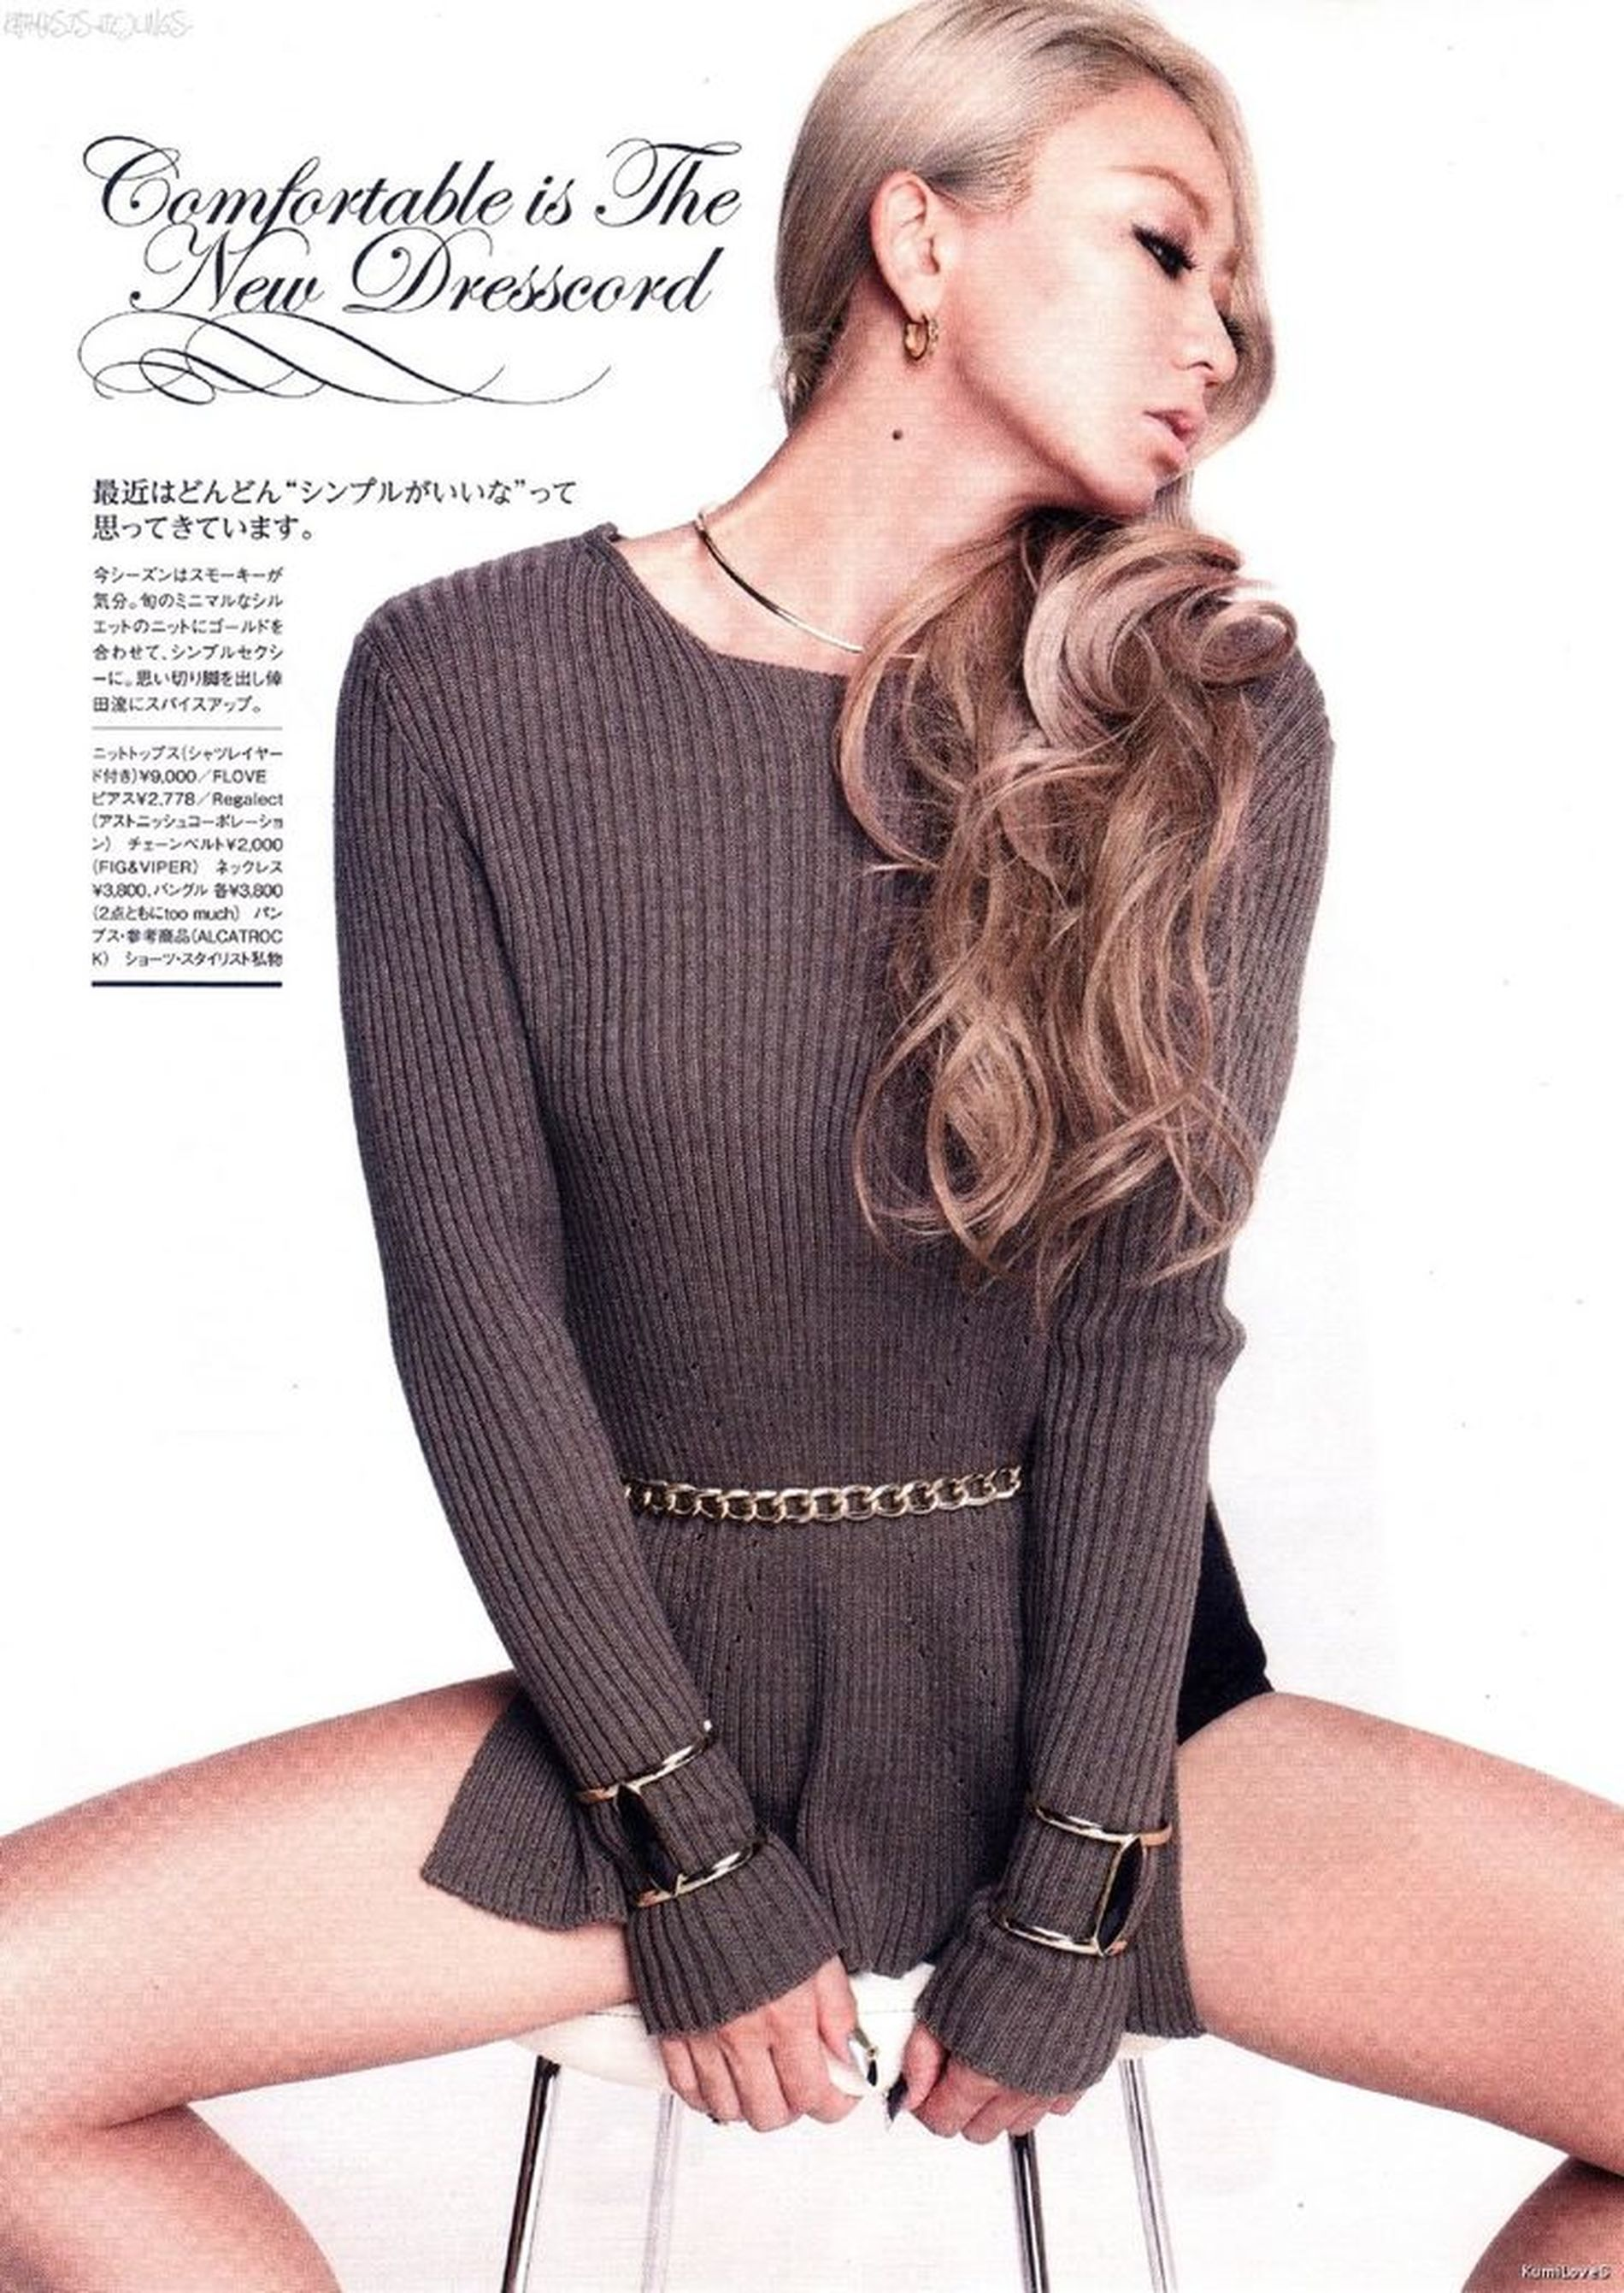 Sweet♡ Kumi ❤ Dreaming My Life Away ♥ I Love Her ❤ She's Beautiful ♡ She's Amazing ❤